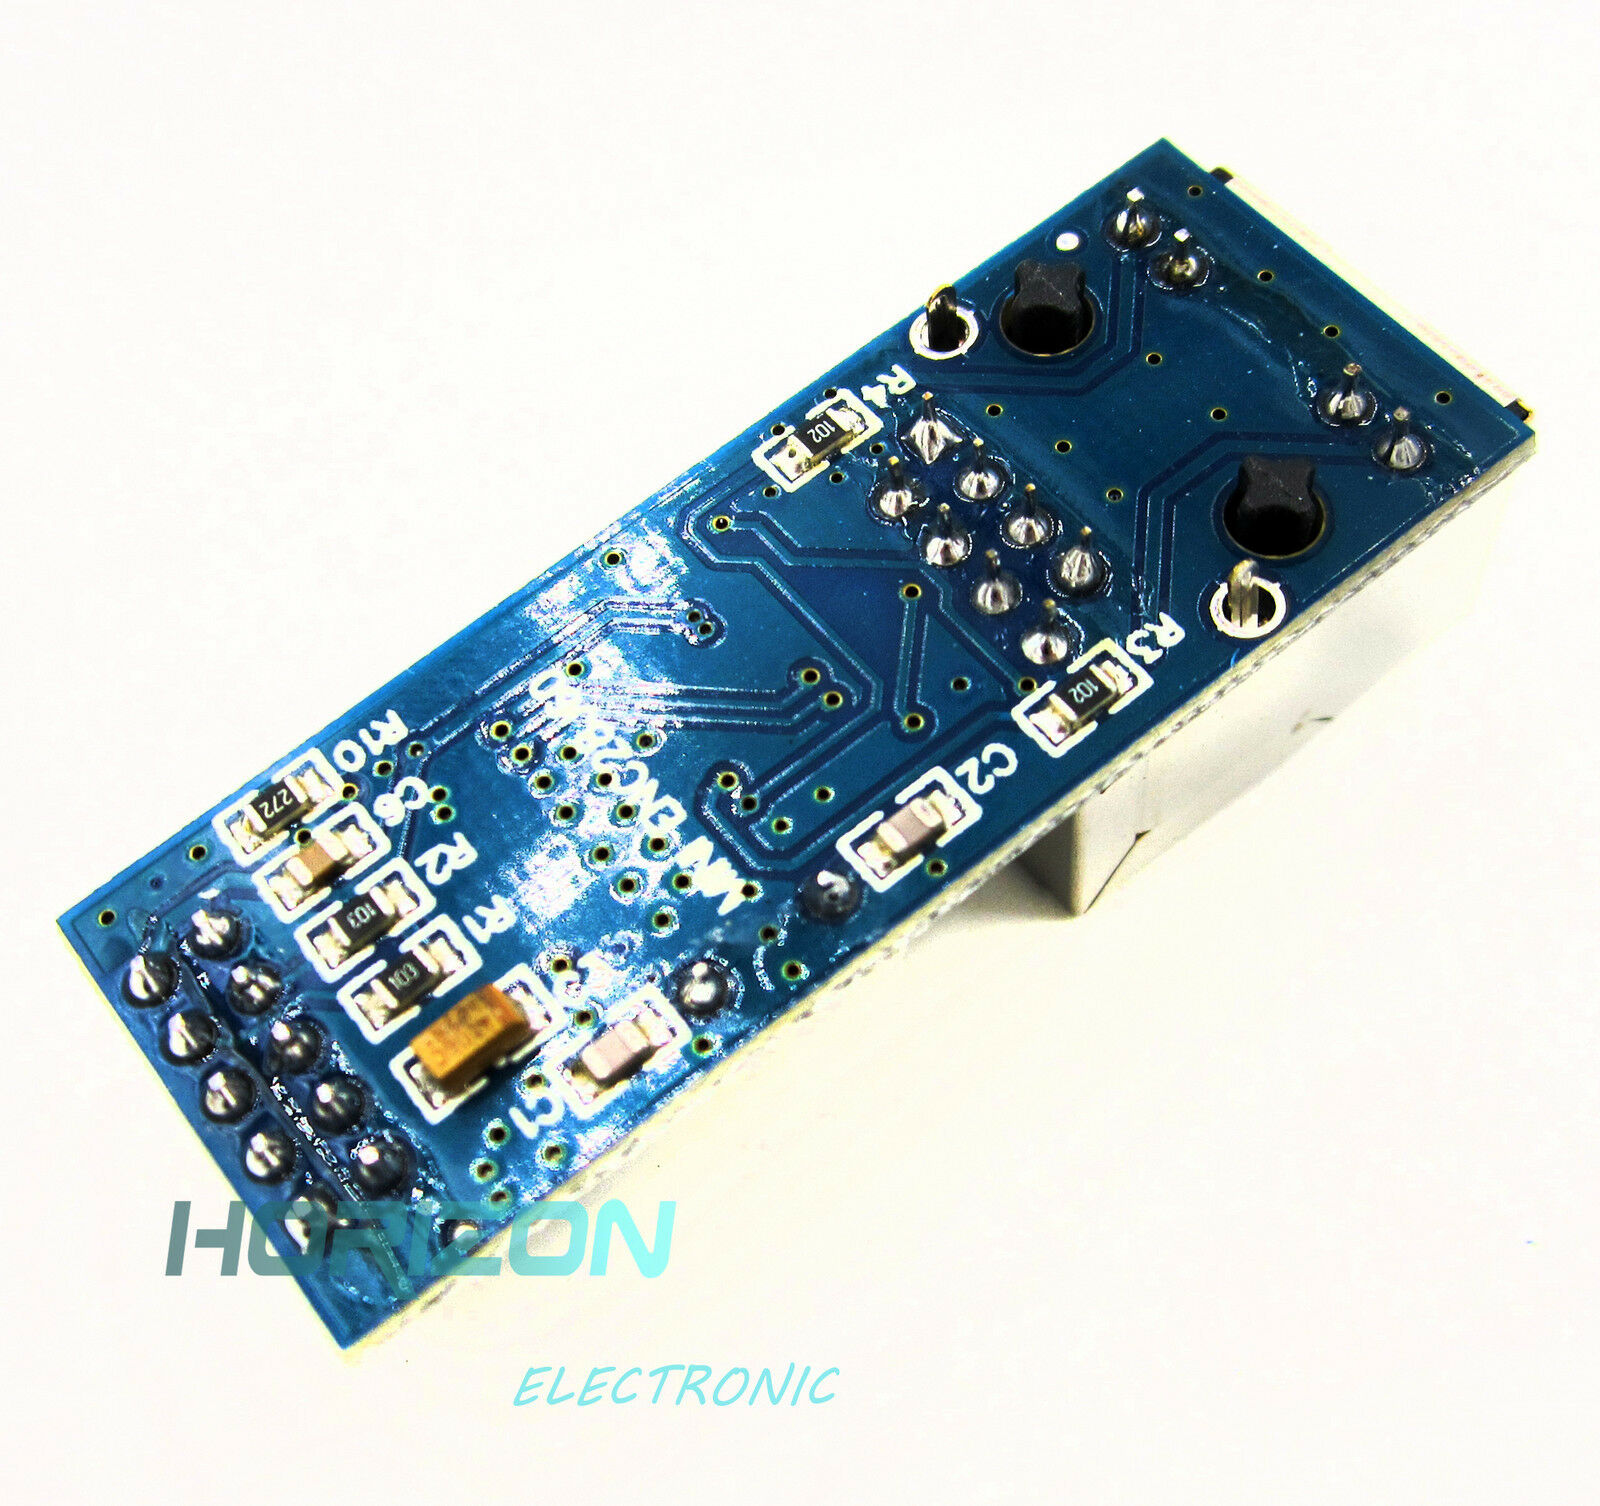 2pcs Enc28j60 Ethernet Lan Network Module For Arduino Spi Avr Pic Side 5x7cm Printed Circuit Pcb Vero Prototyping Track Strip Board Uk Norton Secured Powered By Verisign